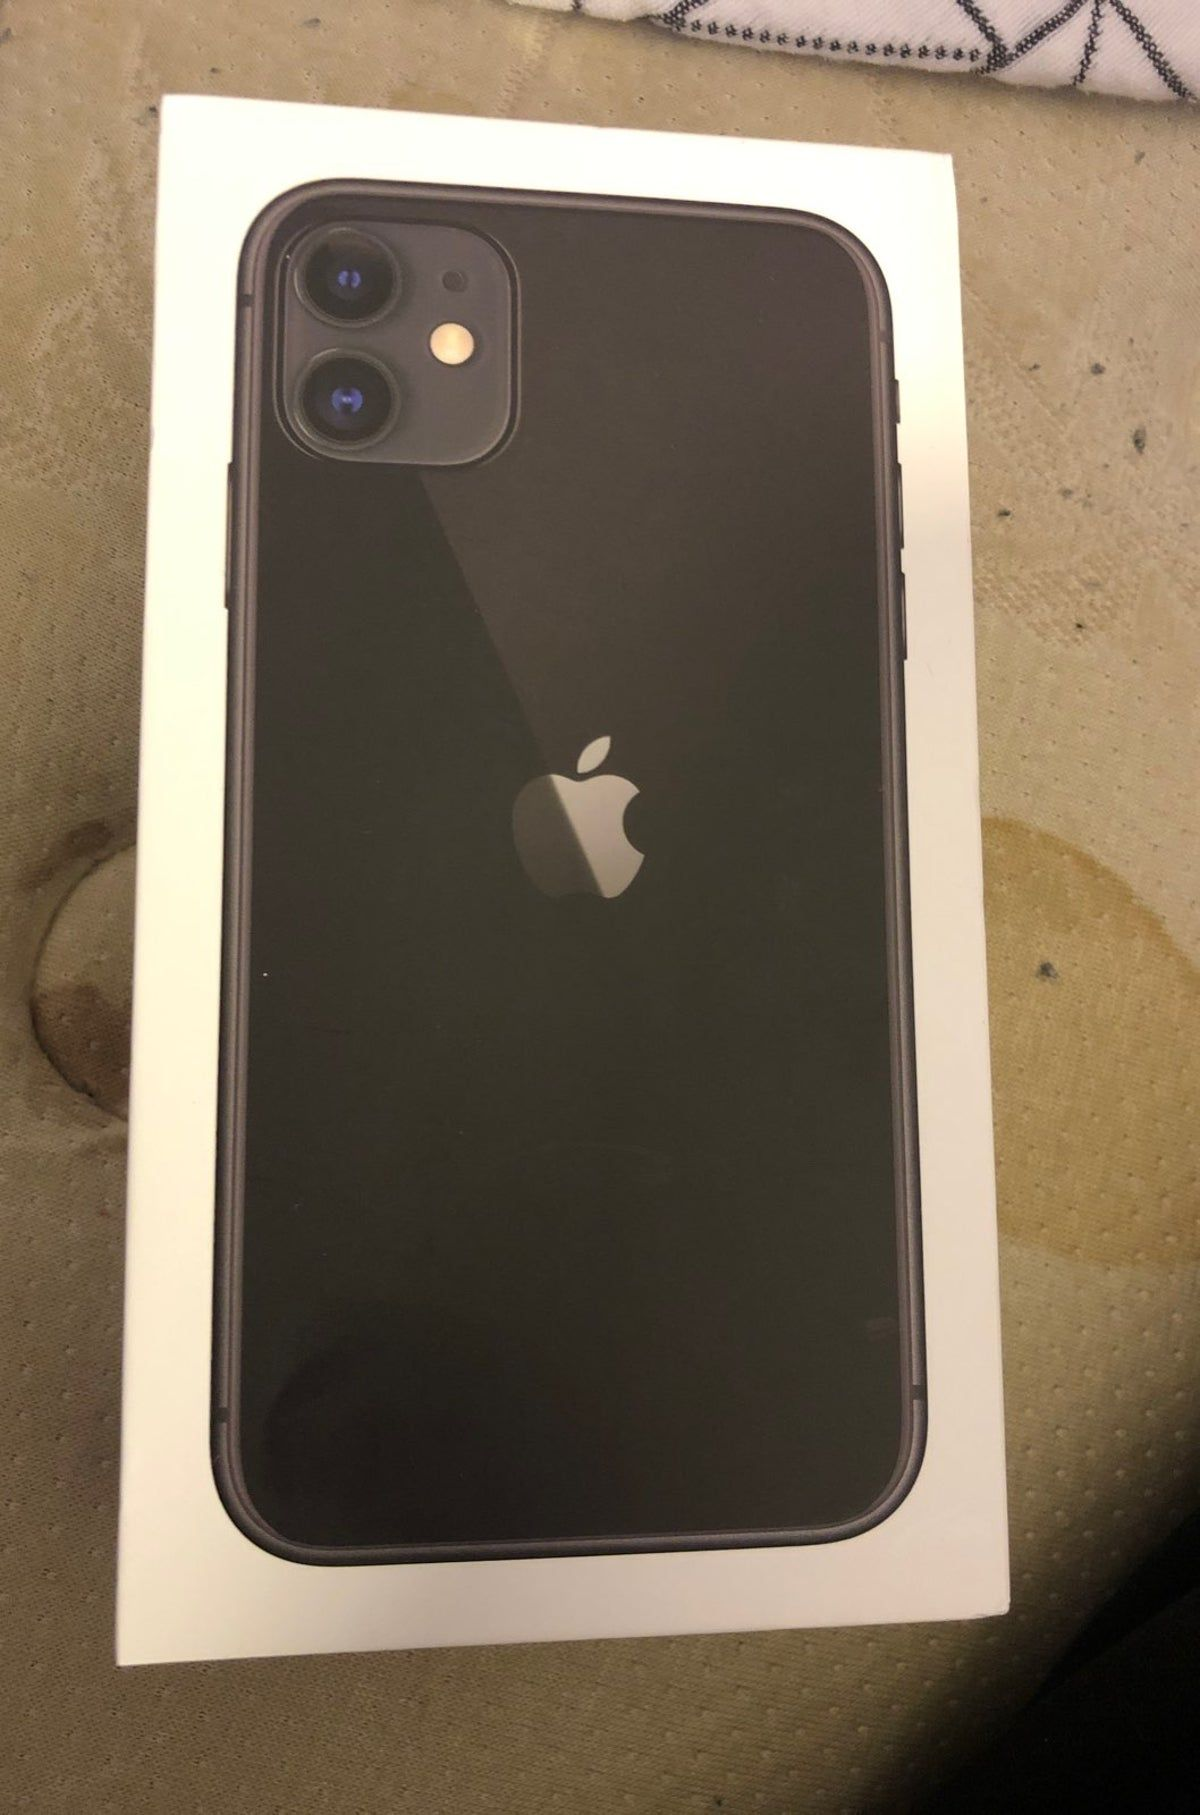 Iphone 11 Black 64 Gb Unlocked Iphone 11 Iphone Iphone 11 Colors